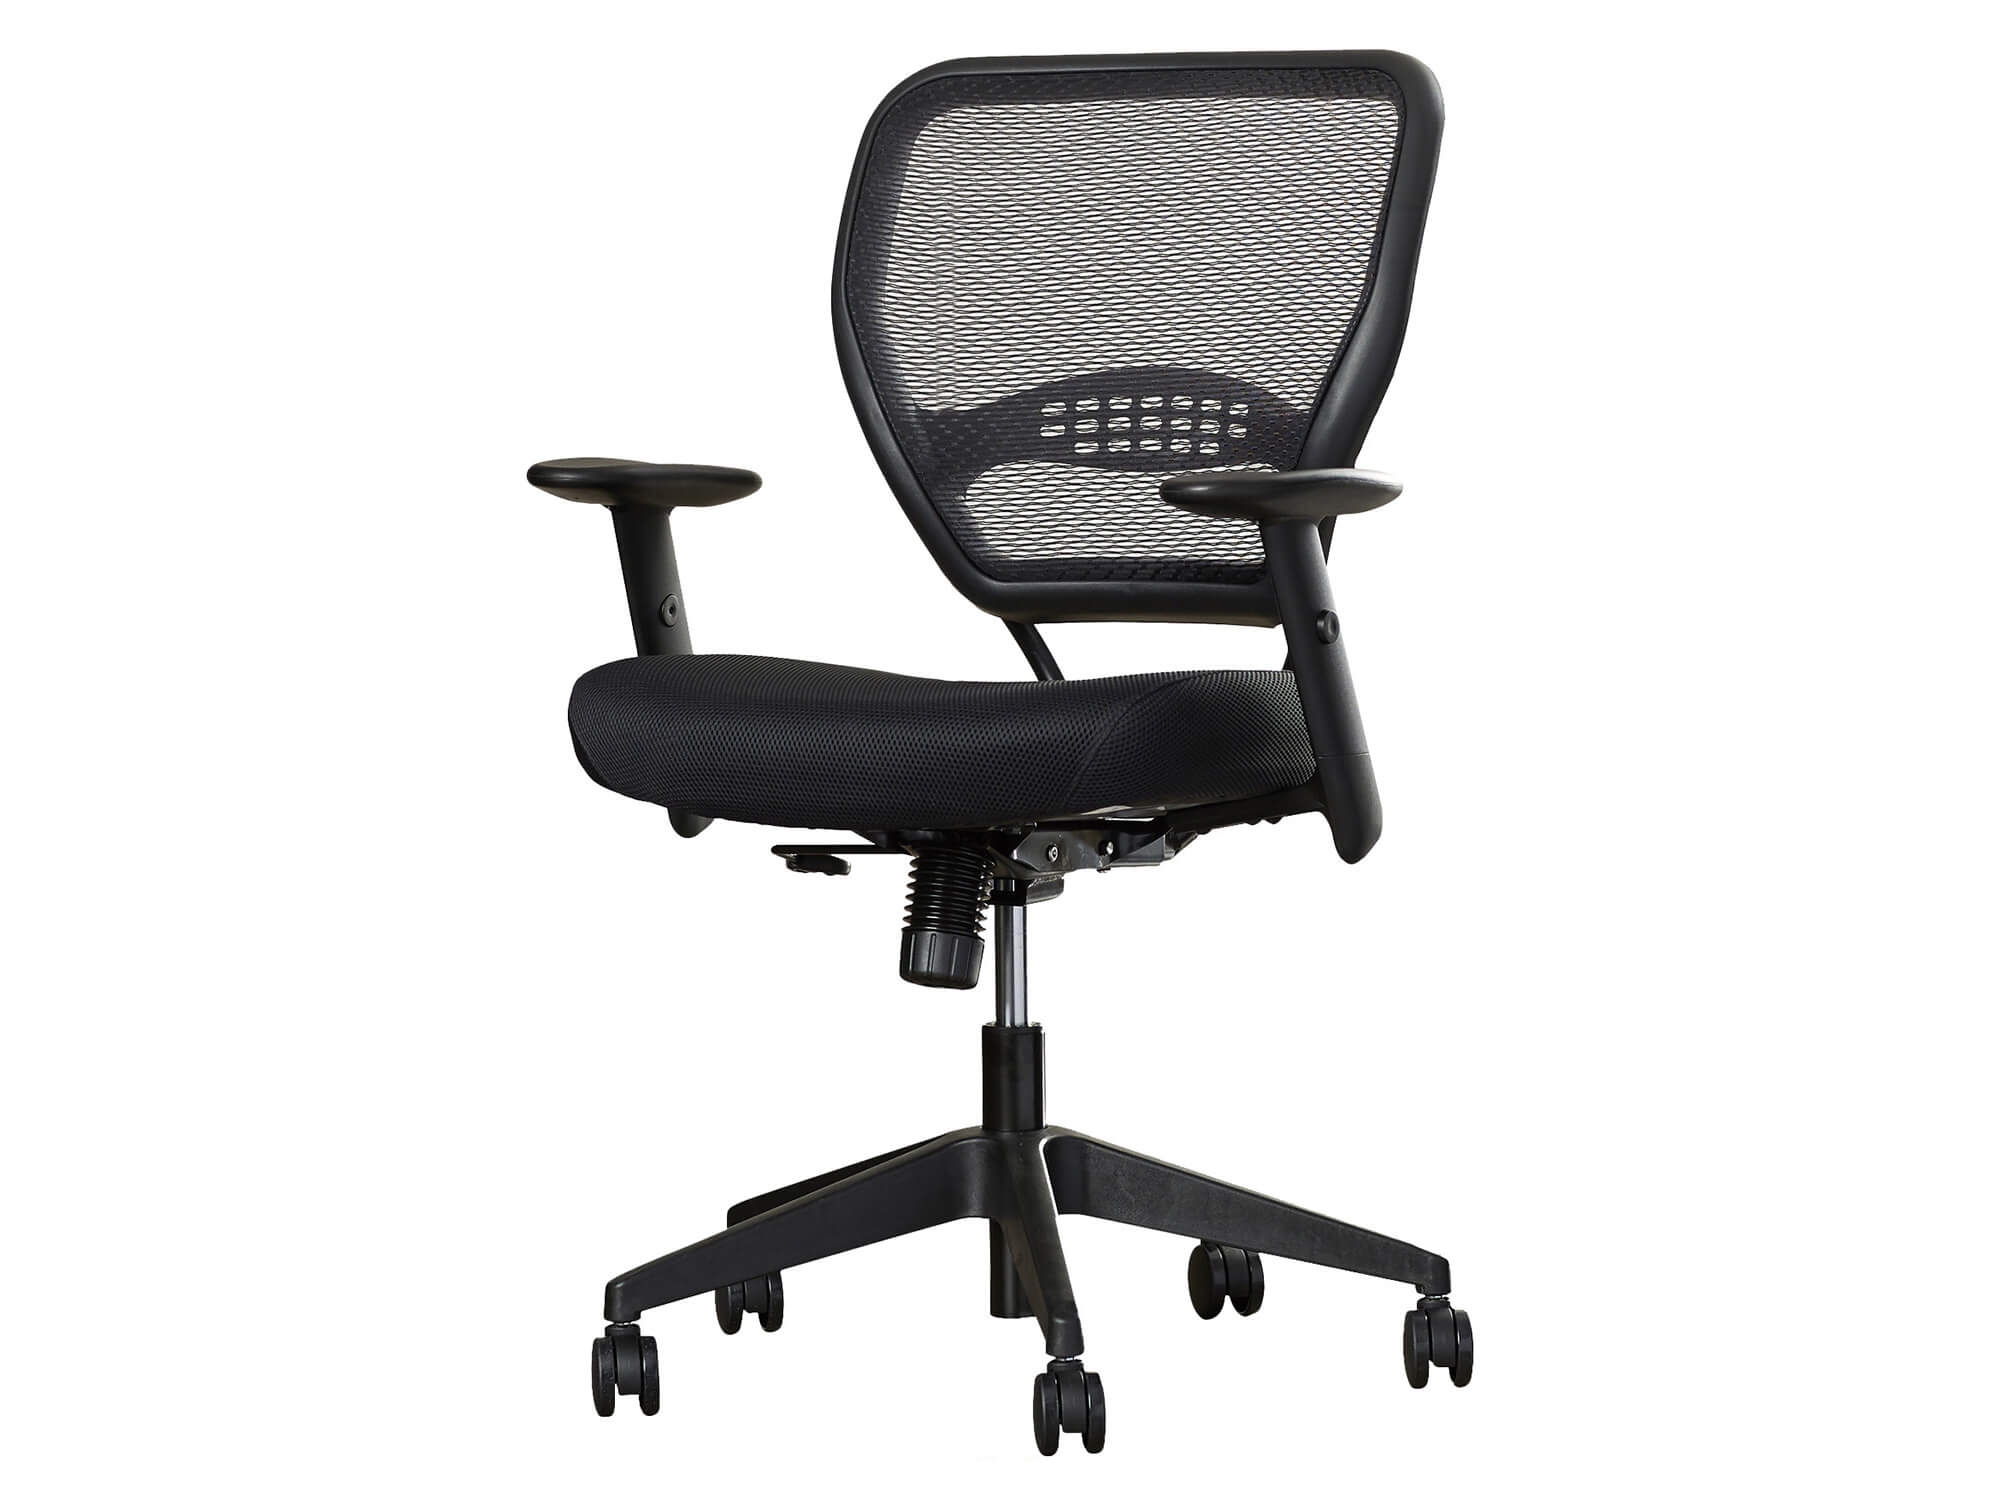 Office task chairs CUB 5500 PSO